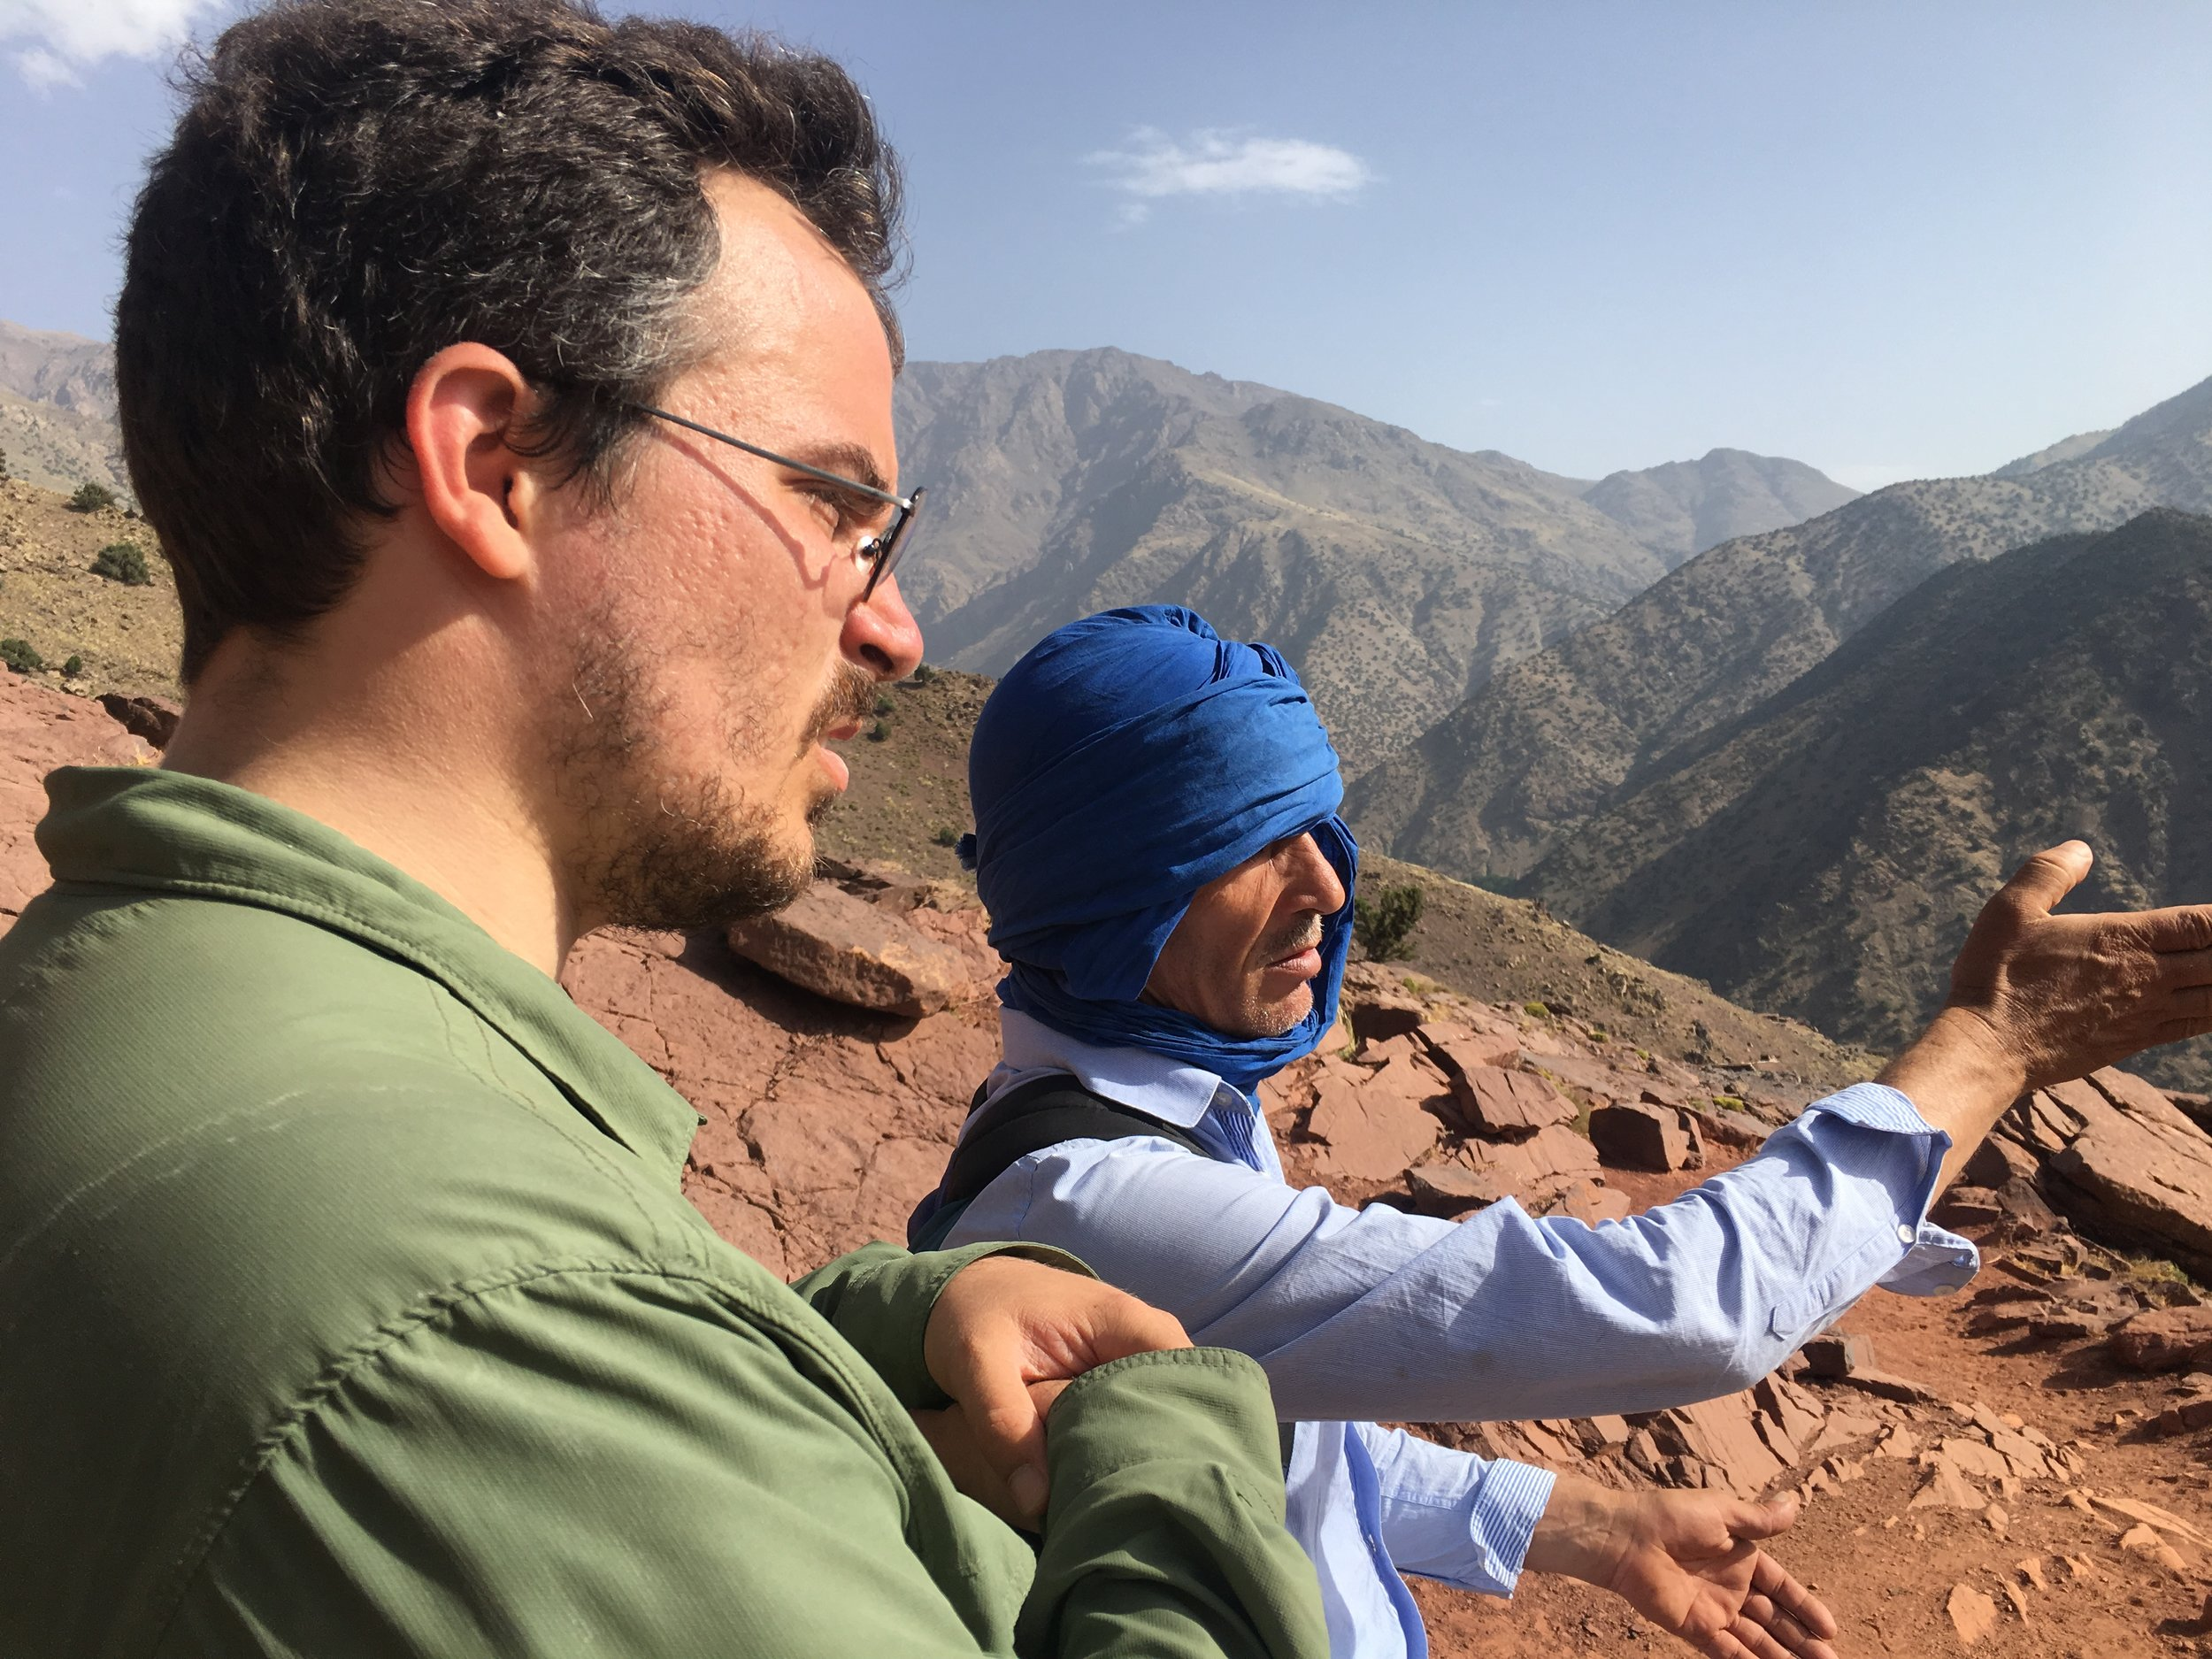 Ali knows every trail, peak and valley in the mountains and is happy to share his vast knowledge.